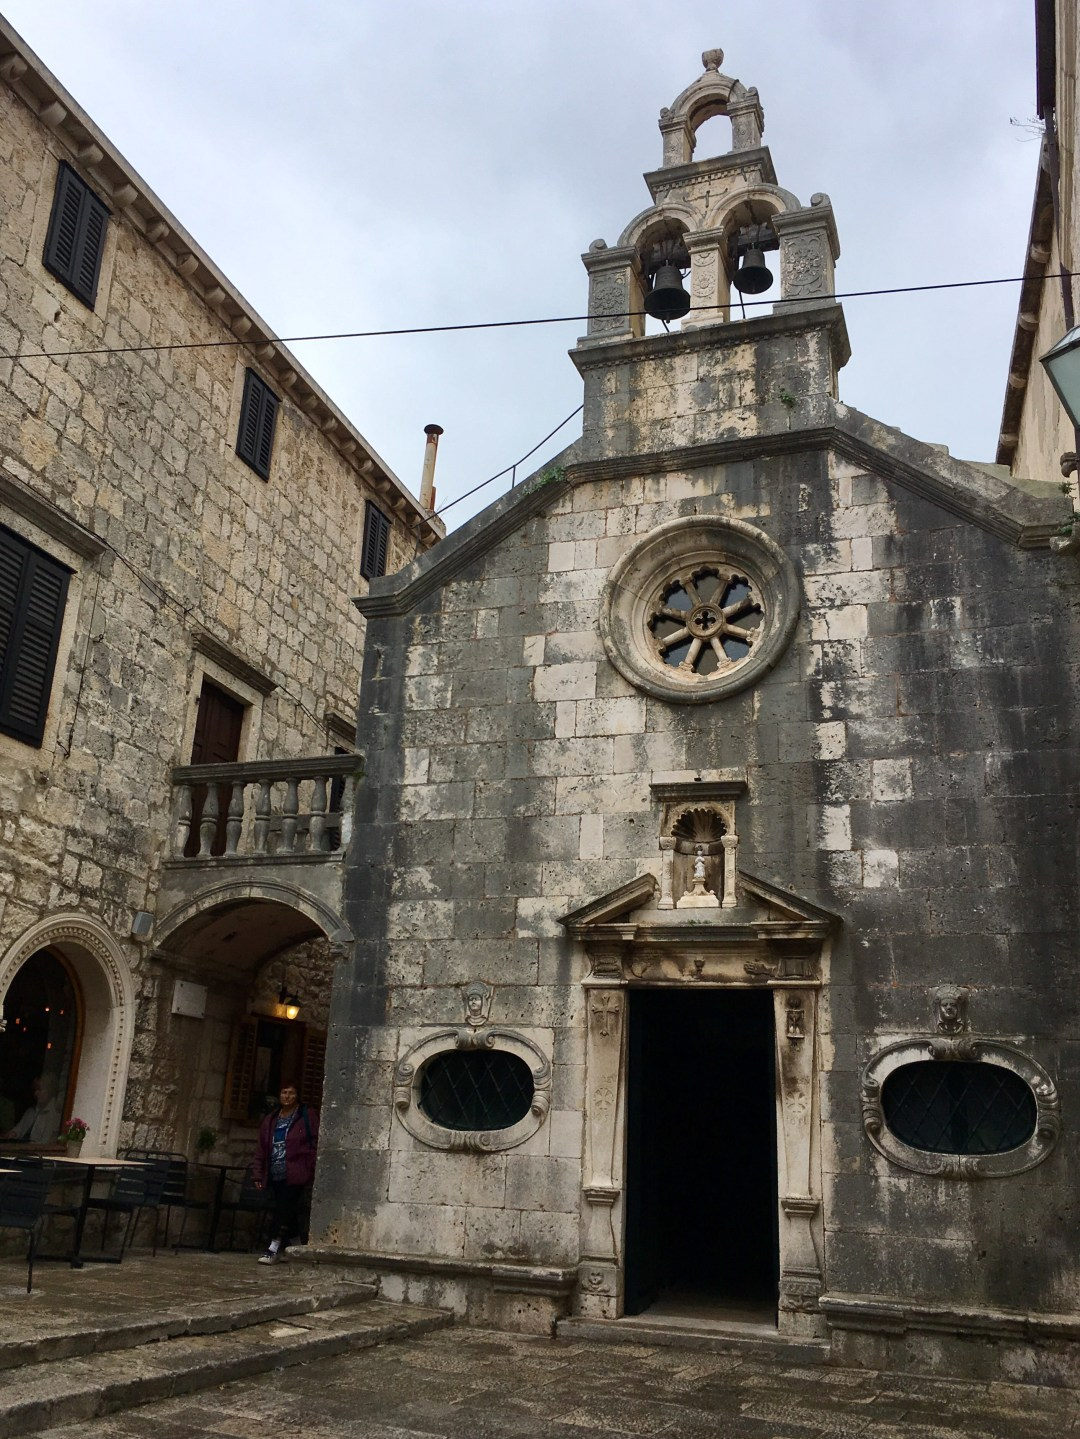 An old church in Korcula's Old Town, Croatia